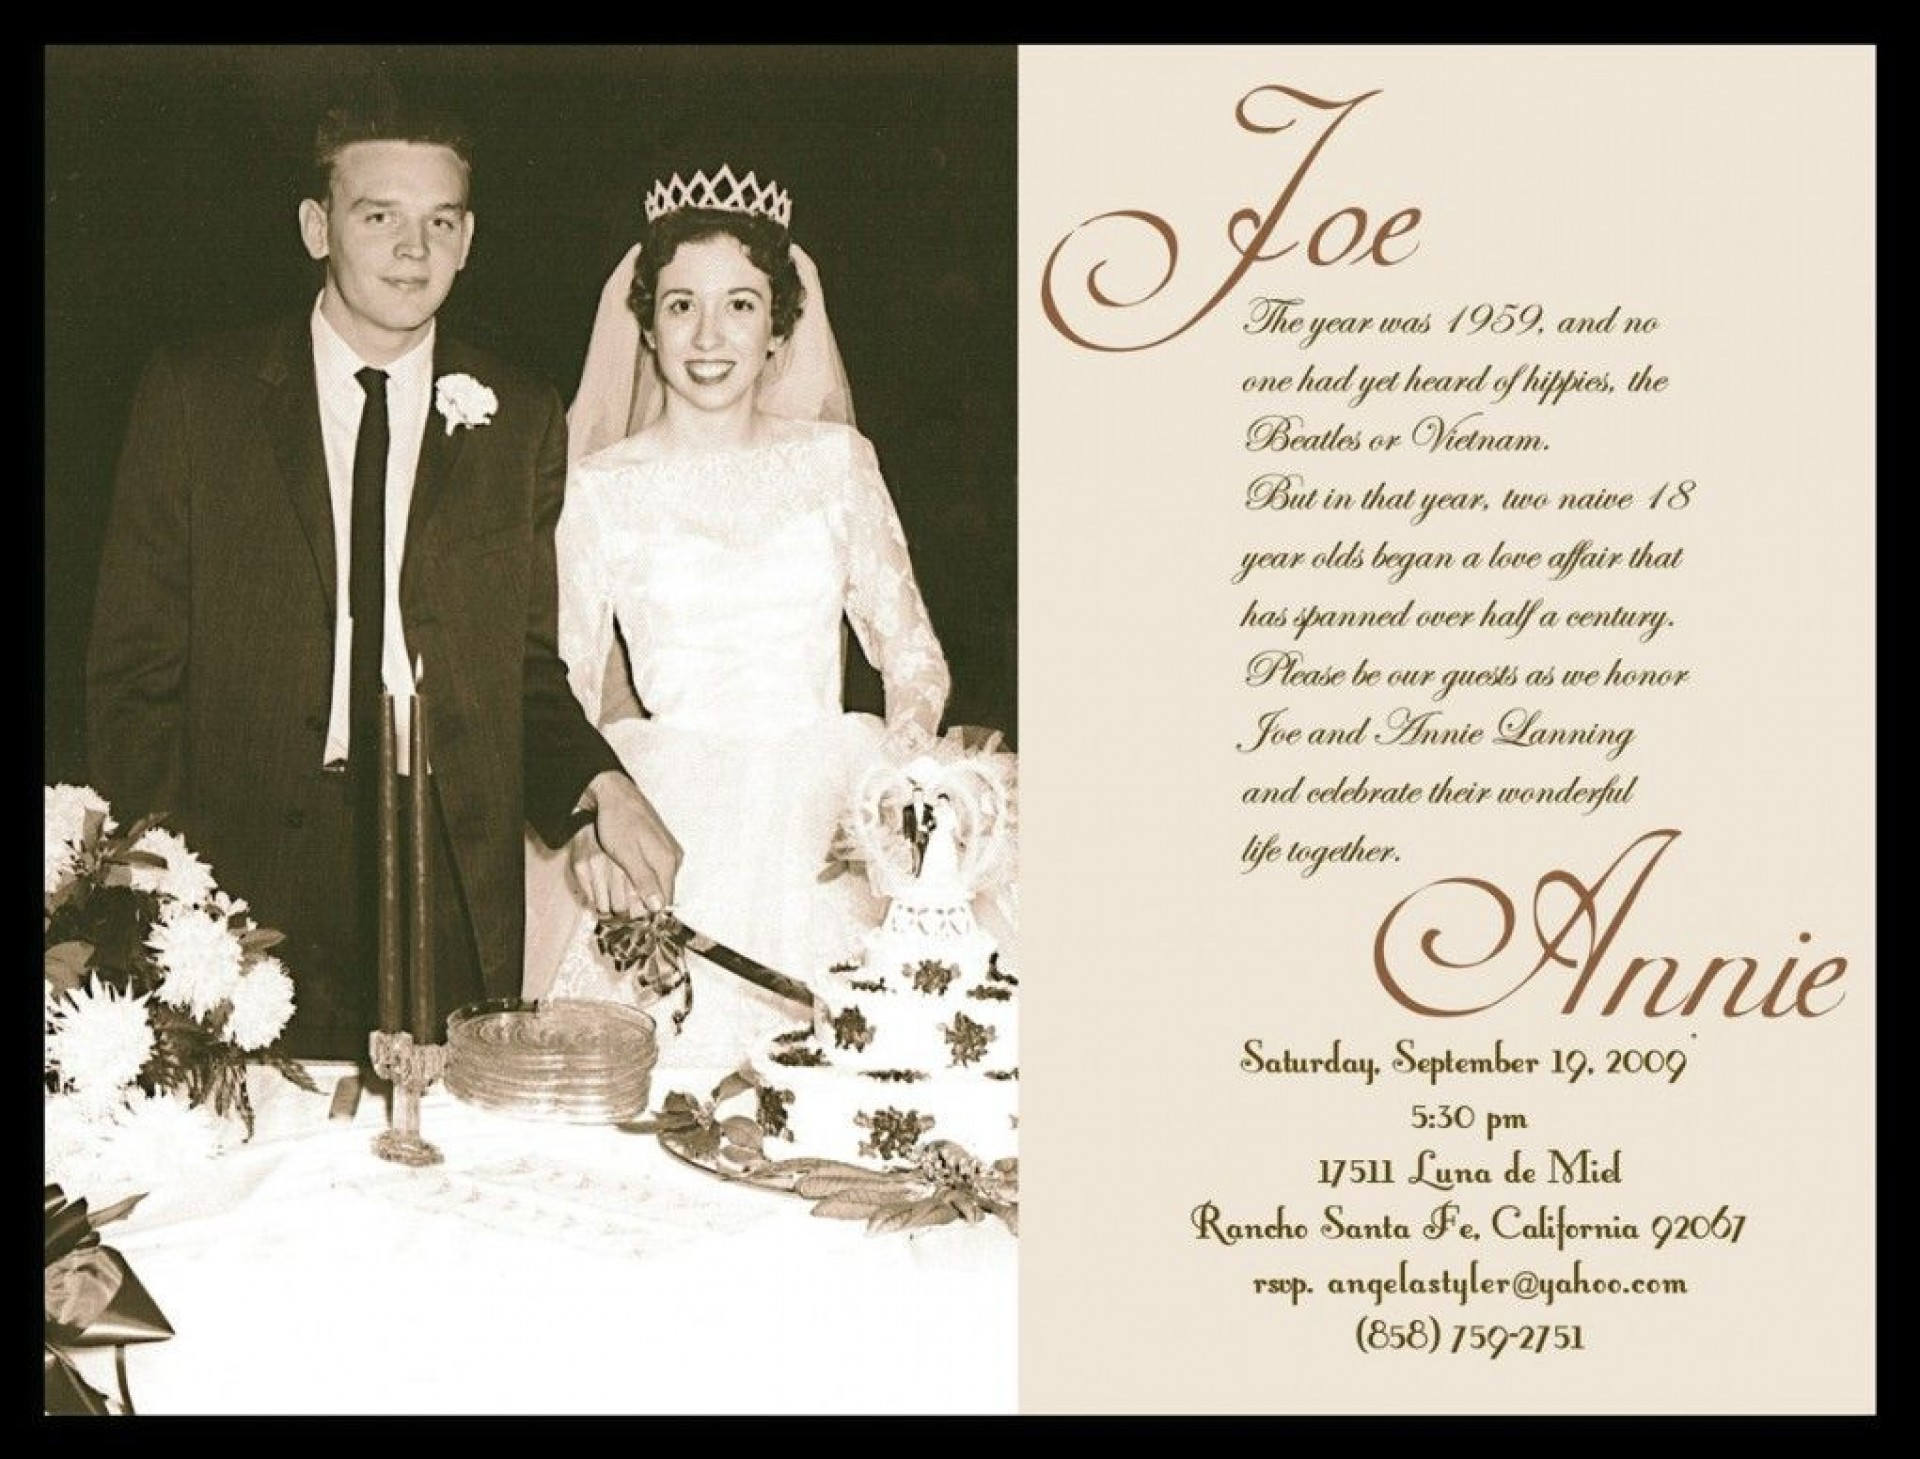 002 Best 50th Wedding Anniversary Invitation Sample  Samples Free Party Template Card Idea1920